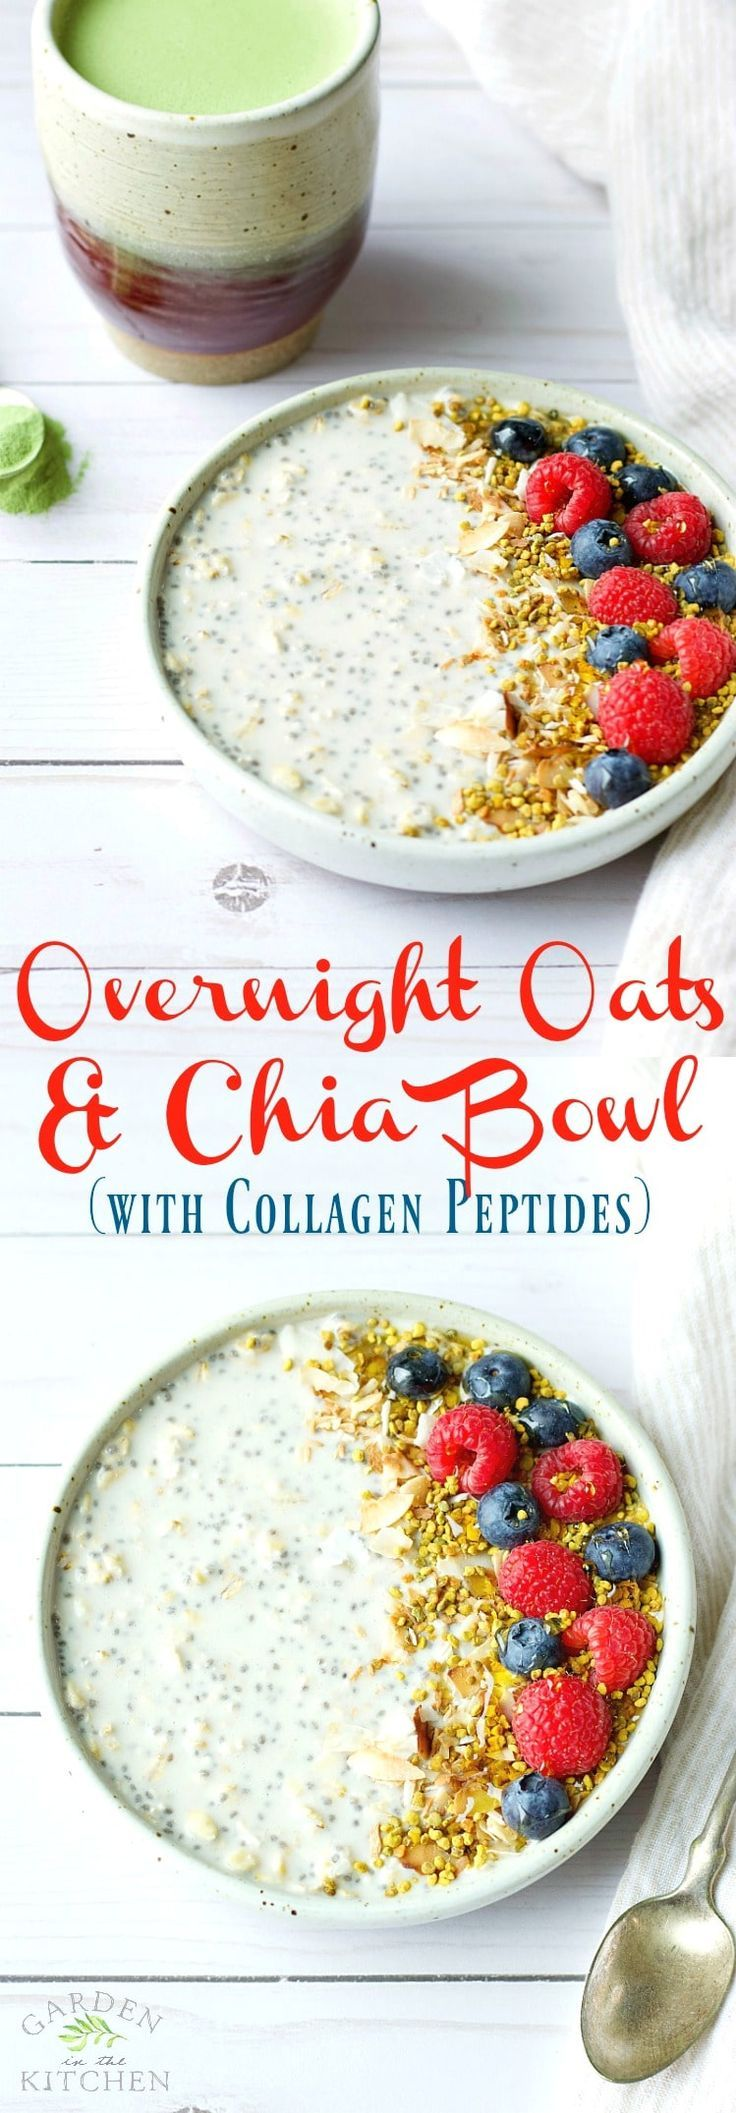 Nourishing Overnight Oats + Chia Bowl with Collagen Peptides. Your morning dose of wellness and rejuvenation in a simple recipe! @vitalproteins #vitalproteins #stayvital #collagenpeptides #ad #overnightoats